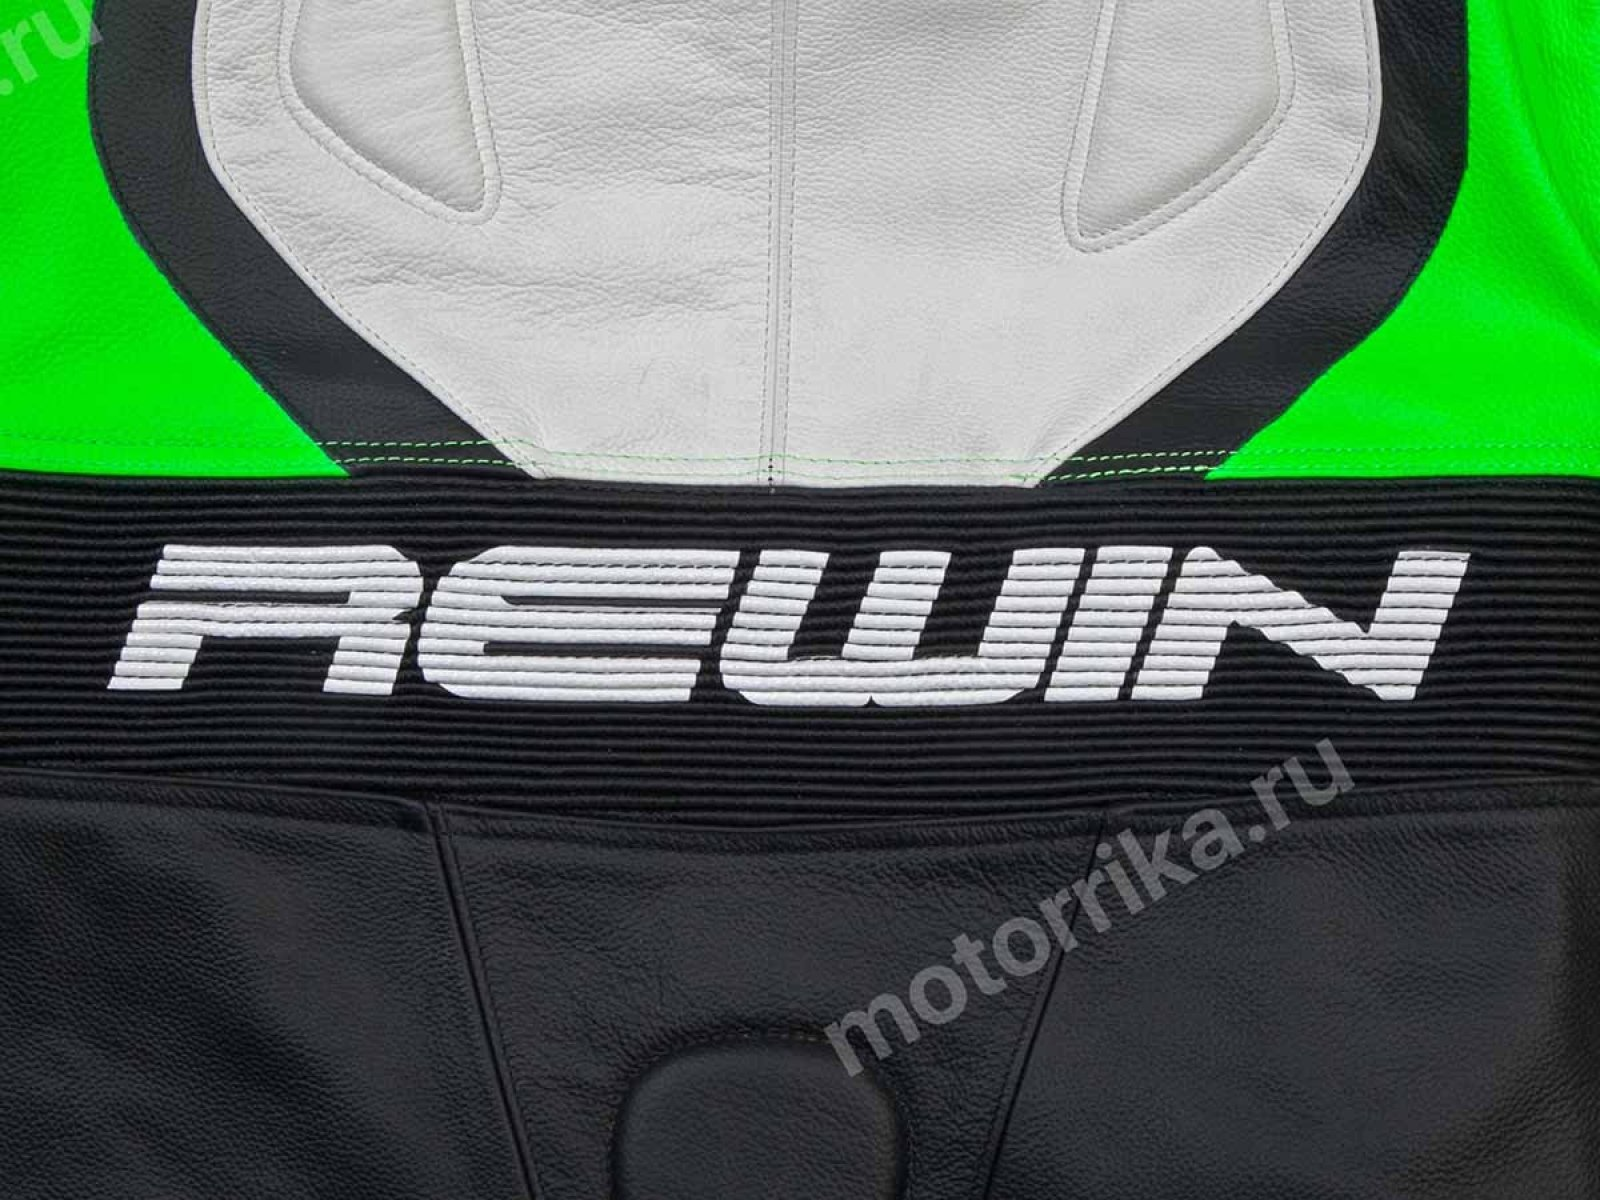 Мотокомбинезон Rewin Stream Green-white-black (кожа быка)